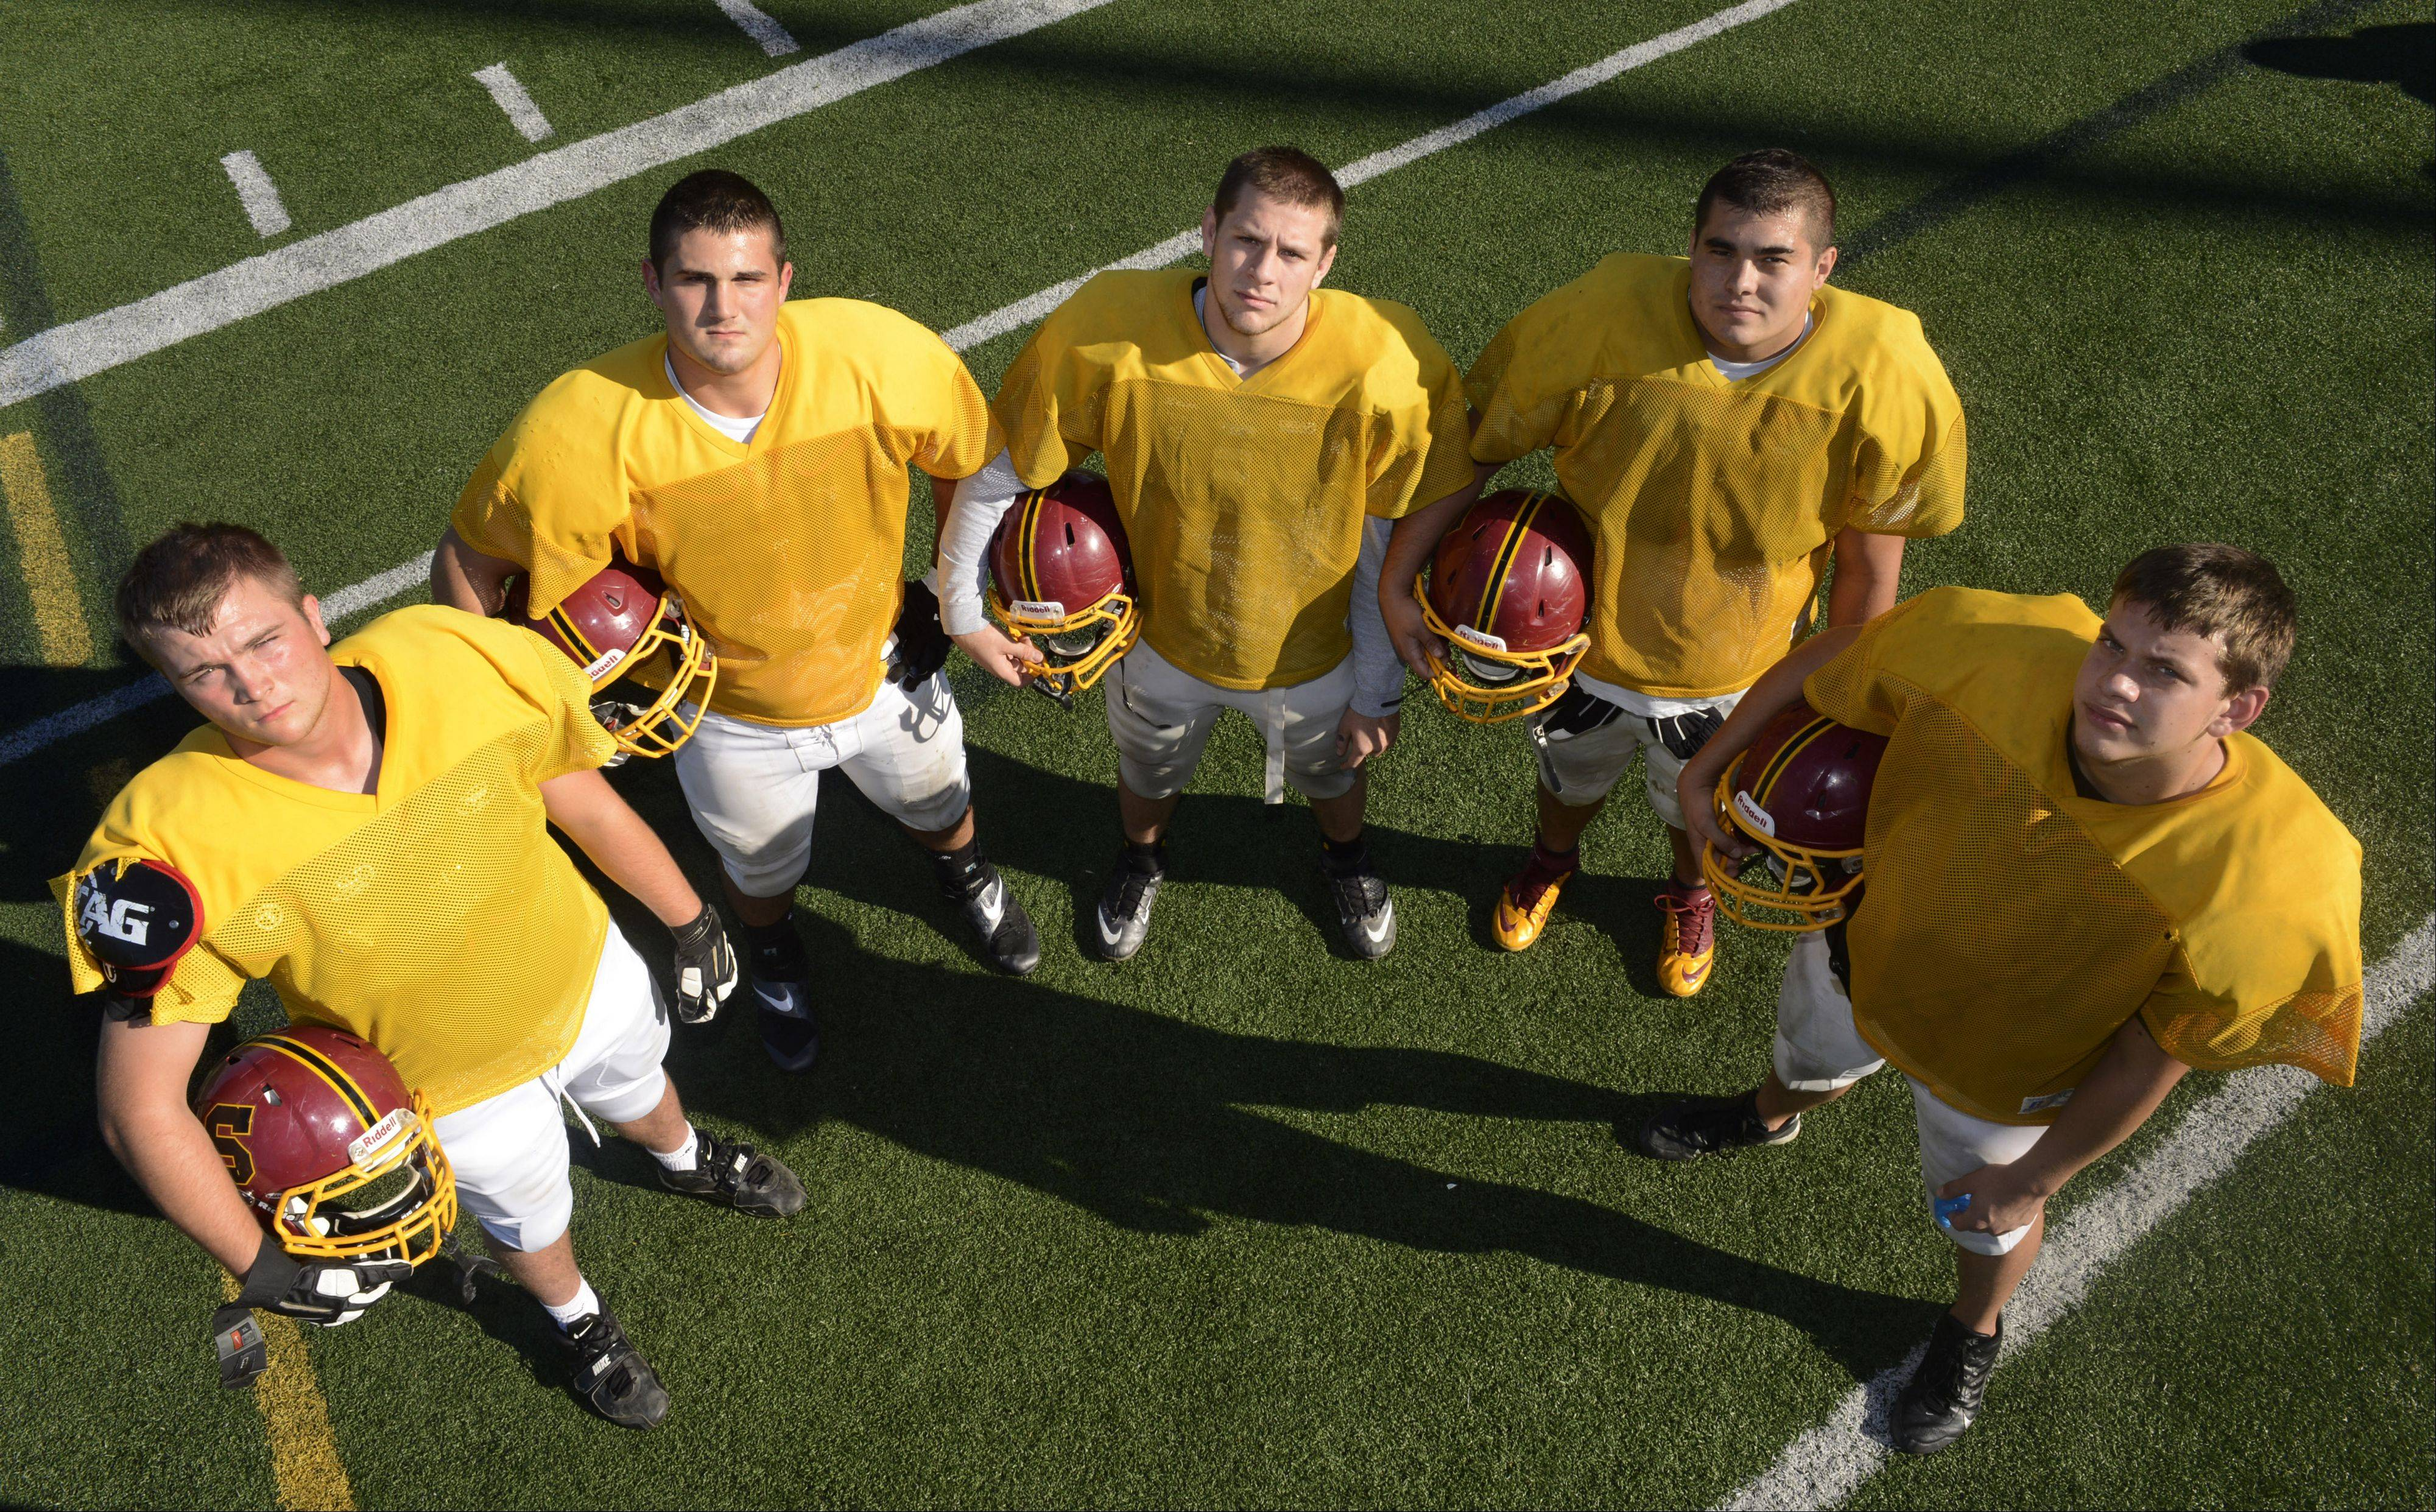 The offensive line of, from left, Alex Piotrowski, Matt Zolper, Matt Stopka, Justin Sanchez and Michael Bruno, is helping pave the way for a remarkable rushing season at Schaumburg.